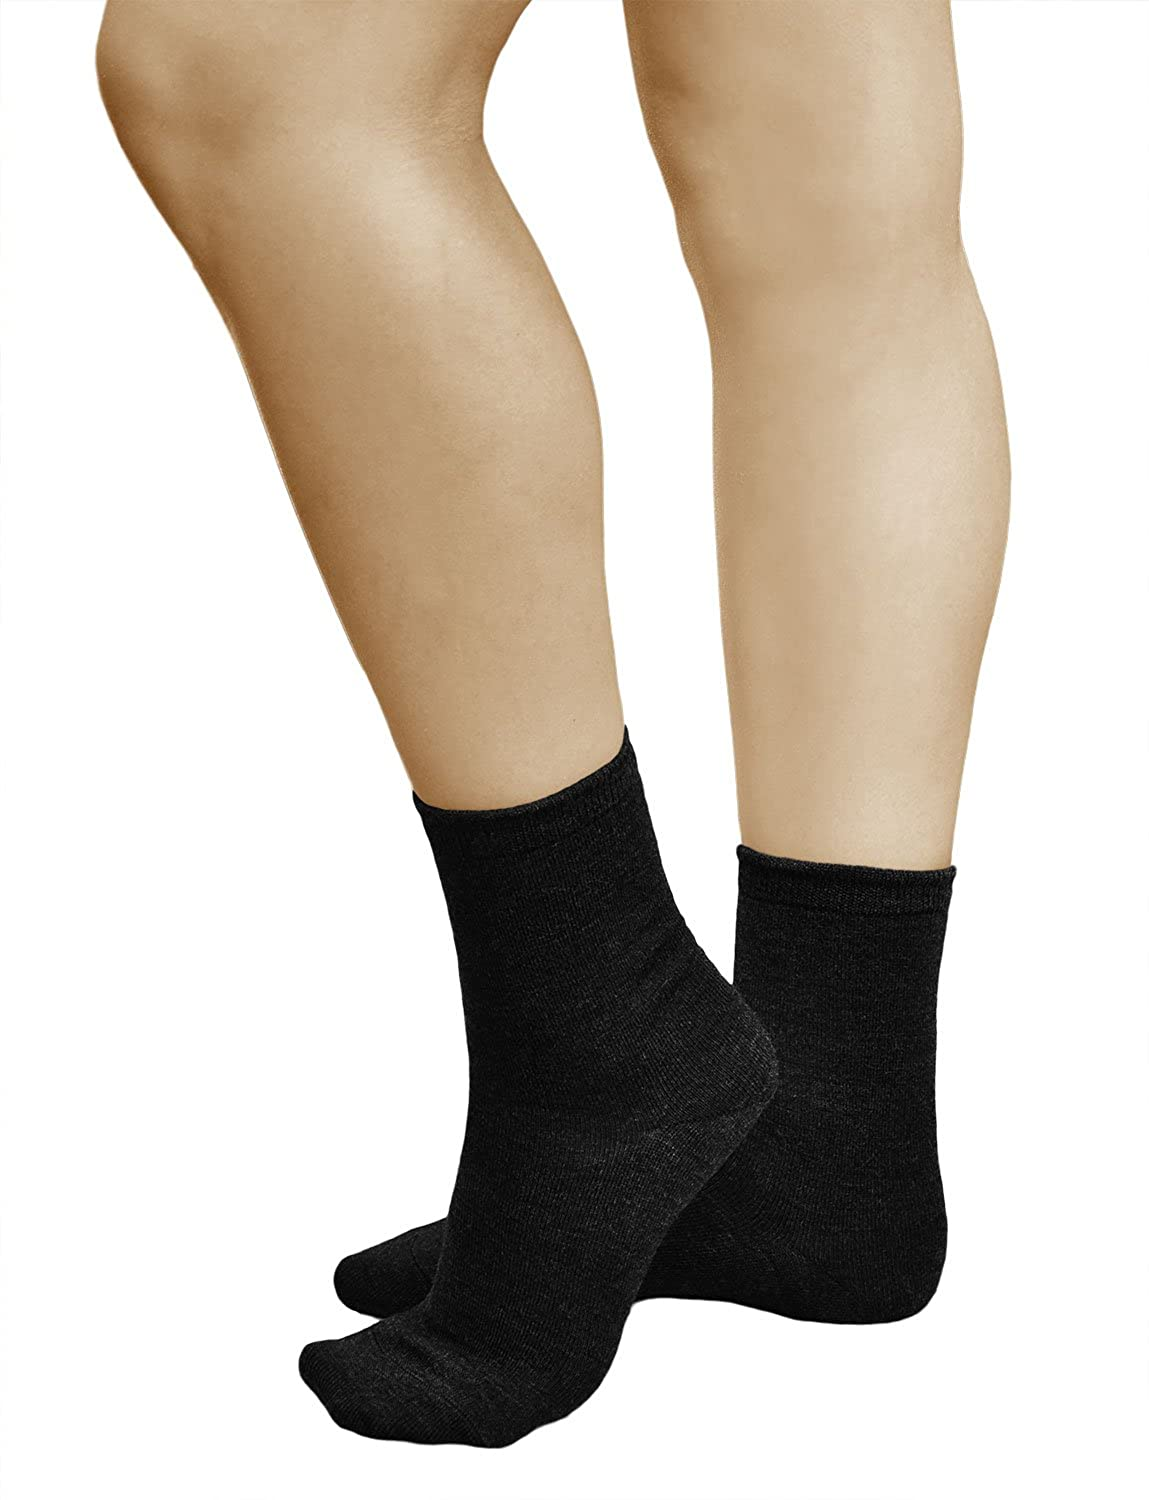 VITSOCKS Womens 80% Merino Wool Soft Warm Socks (3 PAIRS) Top Quality